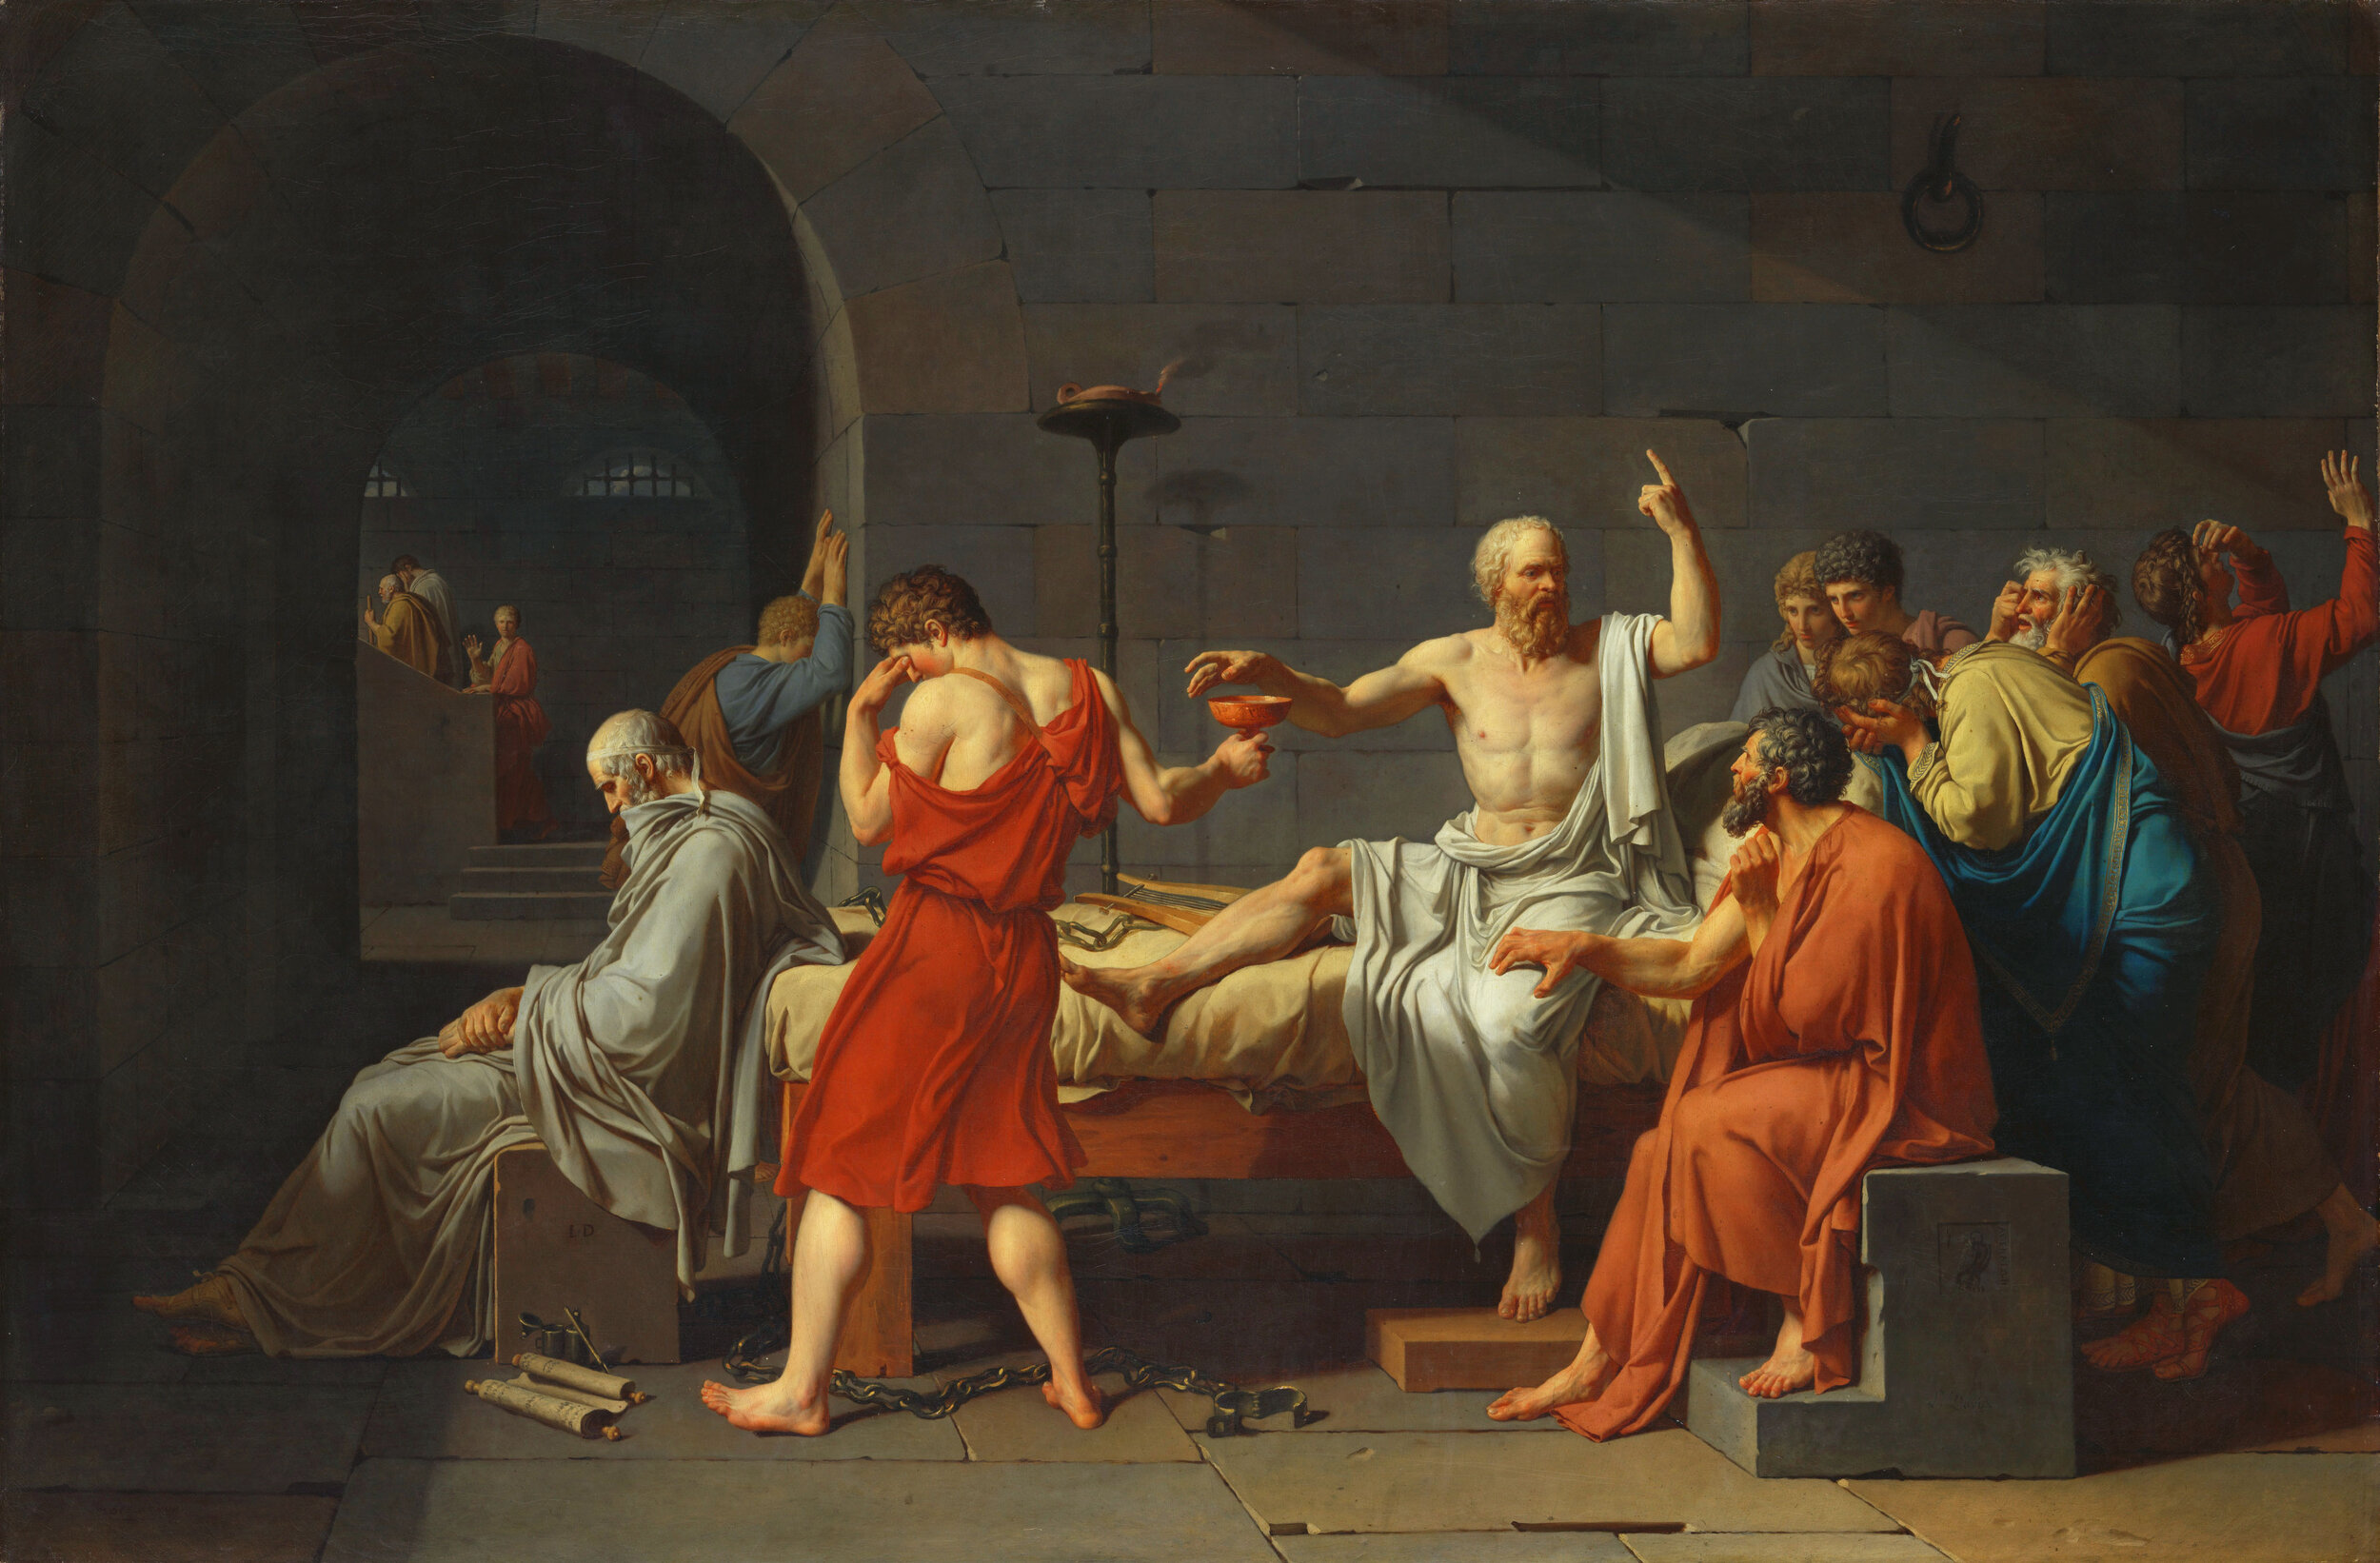 Jacques-Louis David, The Death of Socrates, 1787, oil on canvas, 130x196, the Collection of the Metropolitan Museum of Art, New York.